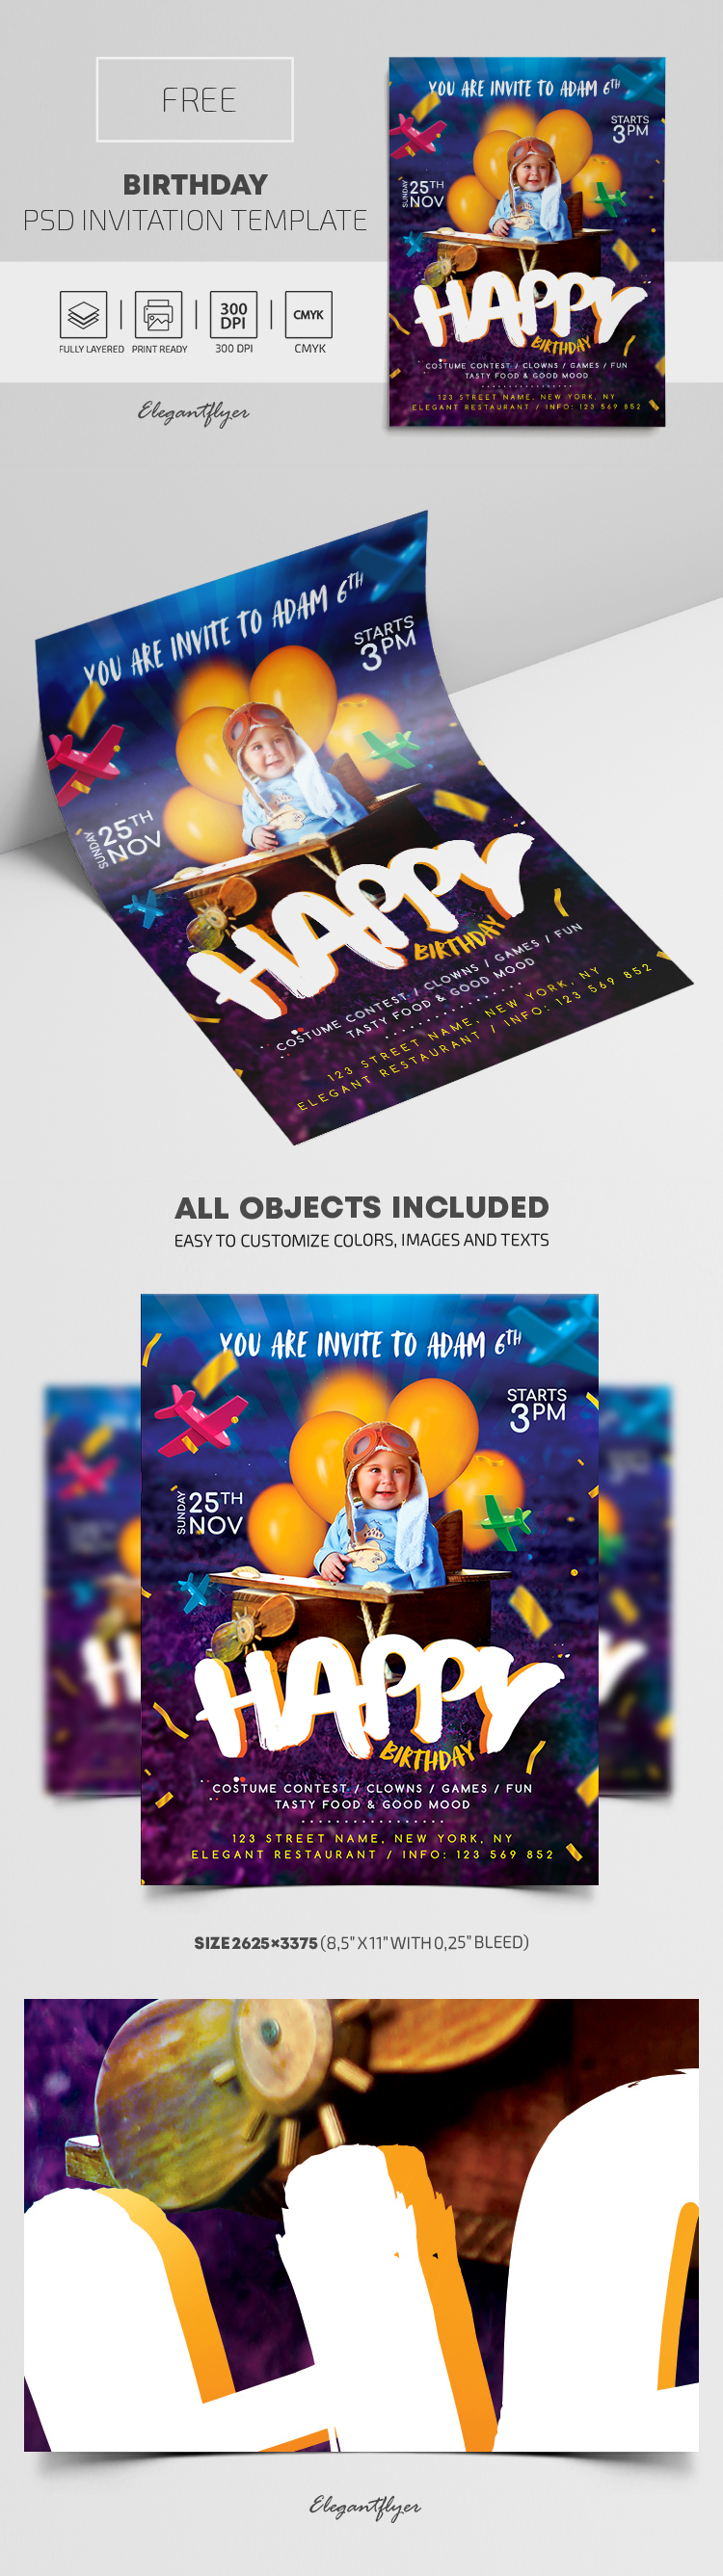 Free Birthday Invitation PSD Template